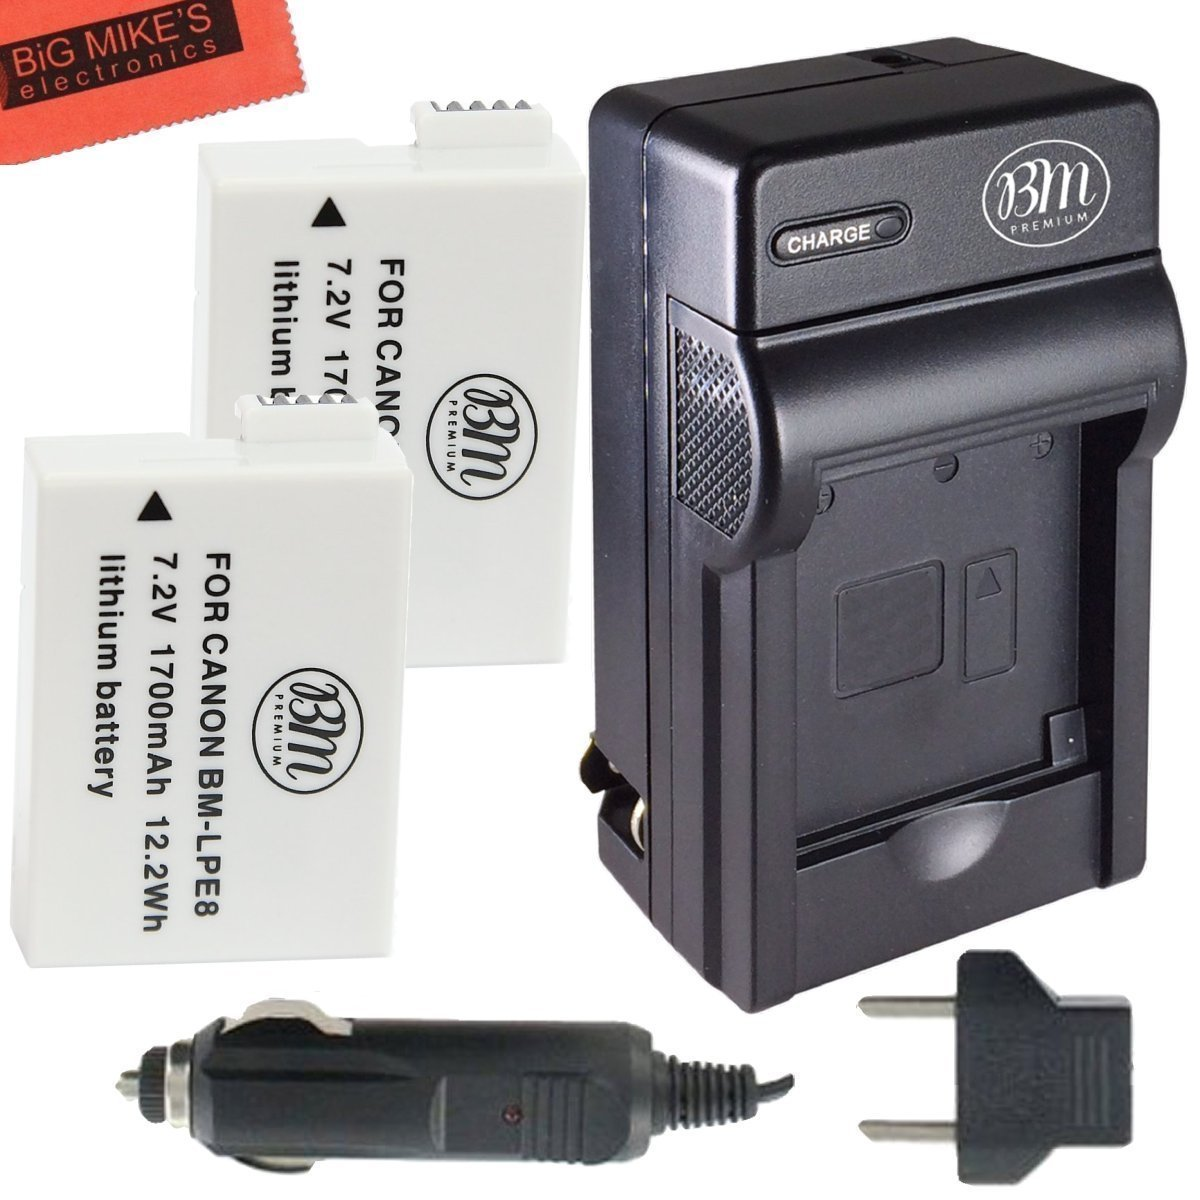 T5i T4i EOS 650D BM Premium 2-Pack of LP-E8 LPE8 Batteries and Dual Battery Charger Kit for Canon EOS Rebel T2i T3i EOS 600D EOS 700D DSLR Digital Camera EOS 550D